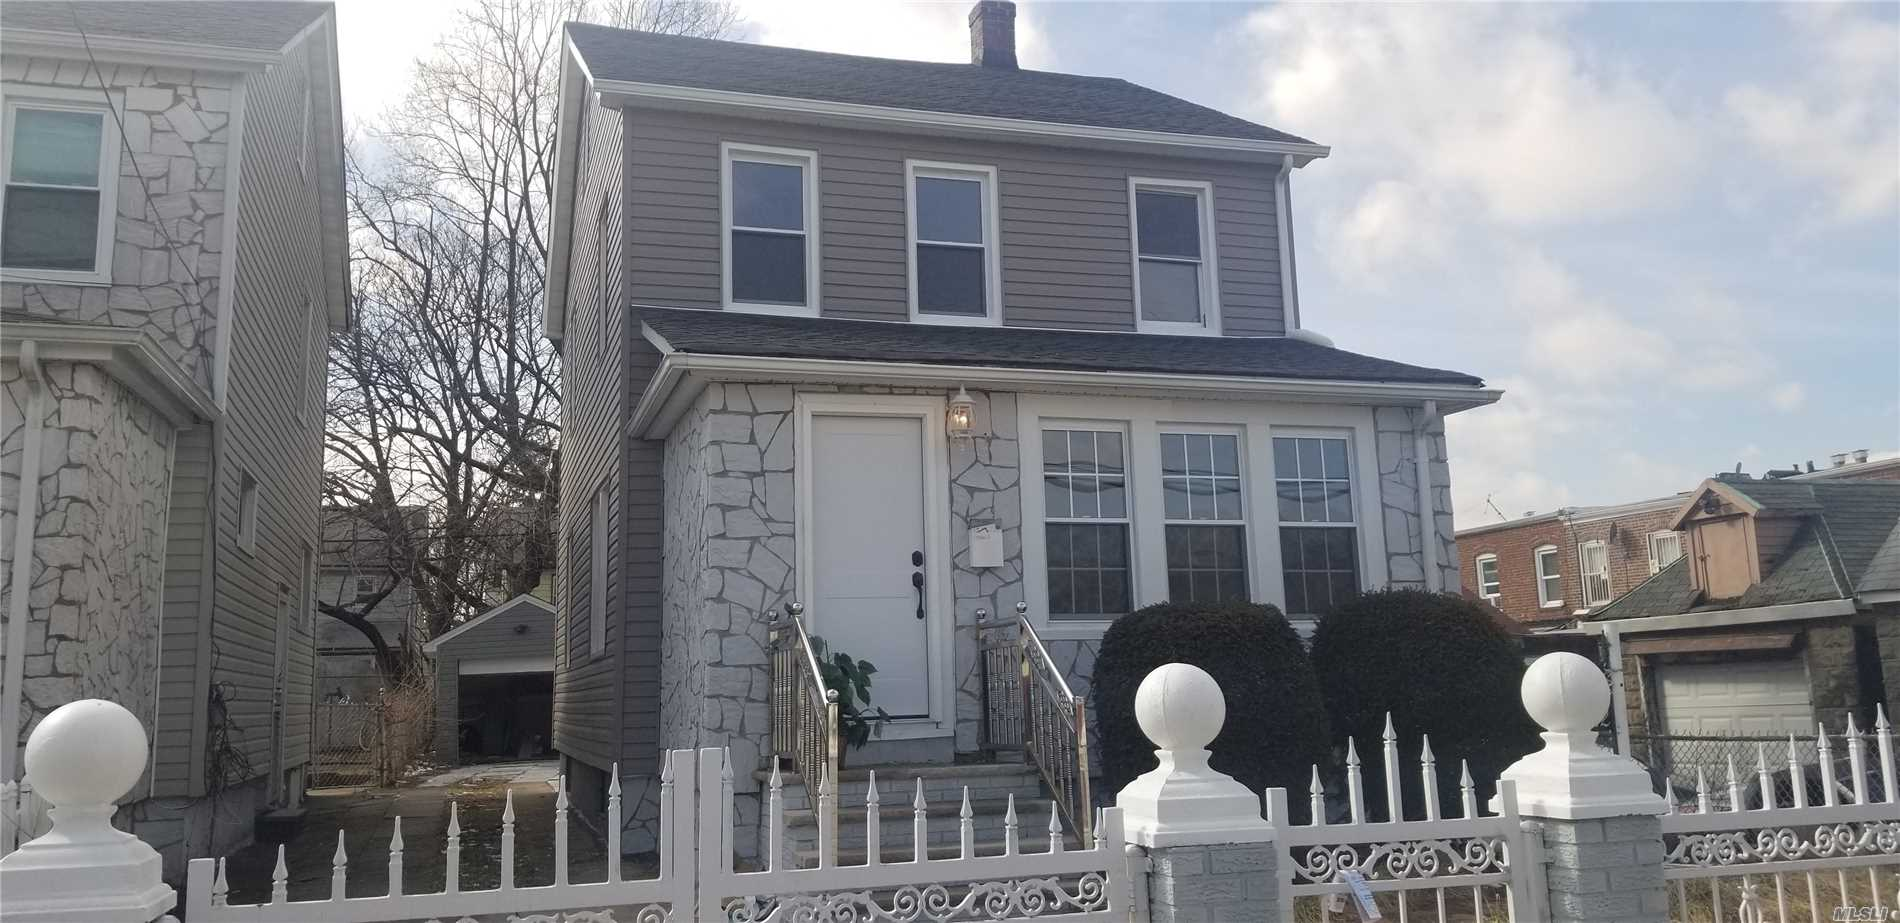 Newly Renovated 1 Family Home With A Full Finish Basement, Full Bath In The Basement Driveway, Backyard And Garage First Floor Futures A Spacious Open Concept Living And Dining Room Combo, Island Kitchen, And 1/2 Bath 2nd Floor Has 3 Bedrooms, 1 Full Bath 3 Floor Has A Spacious Attic Space